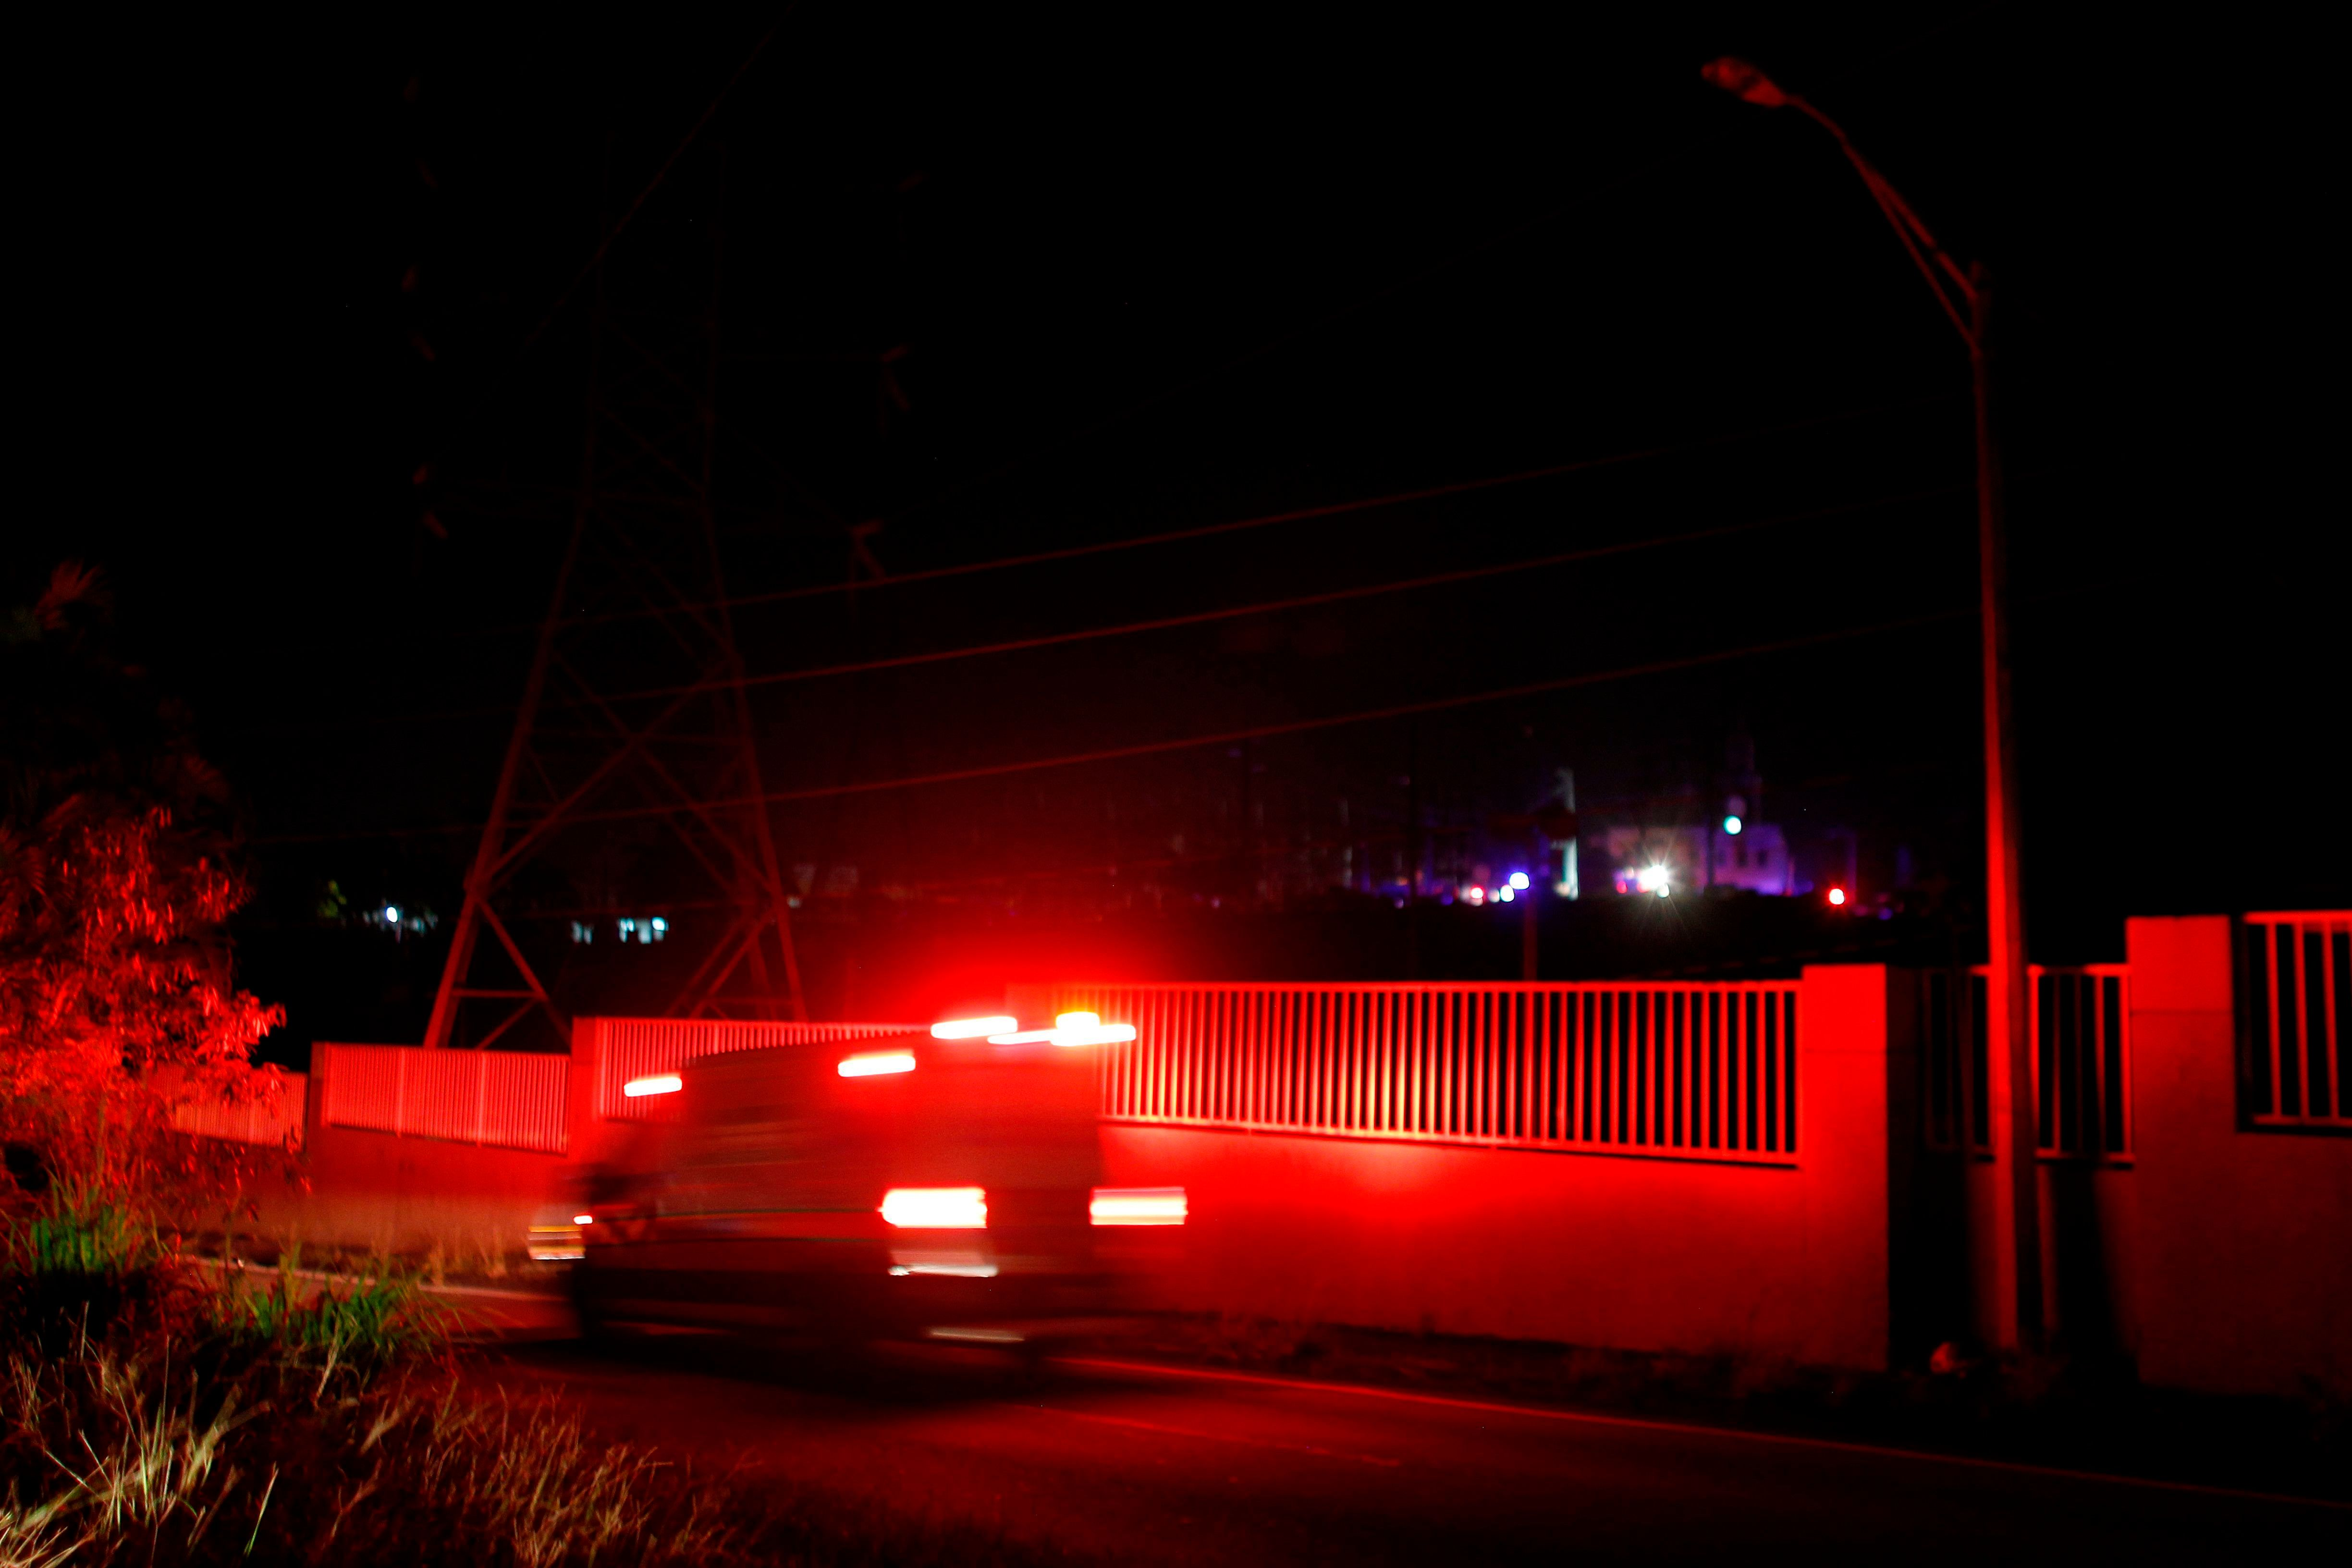 An explosion at a power station plunged parts of northern Puerto Rico into darkness on Sunday